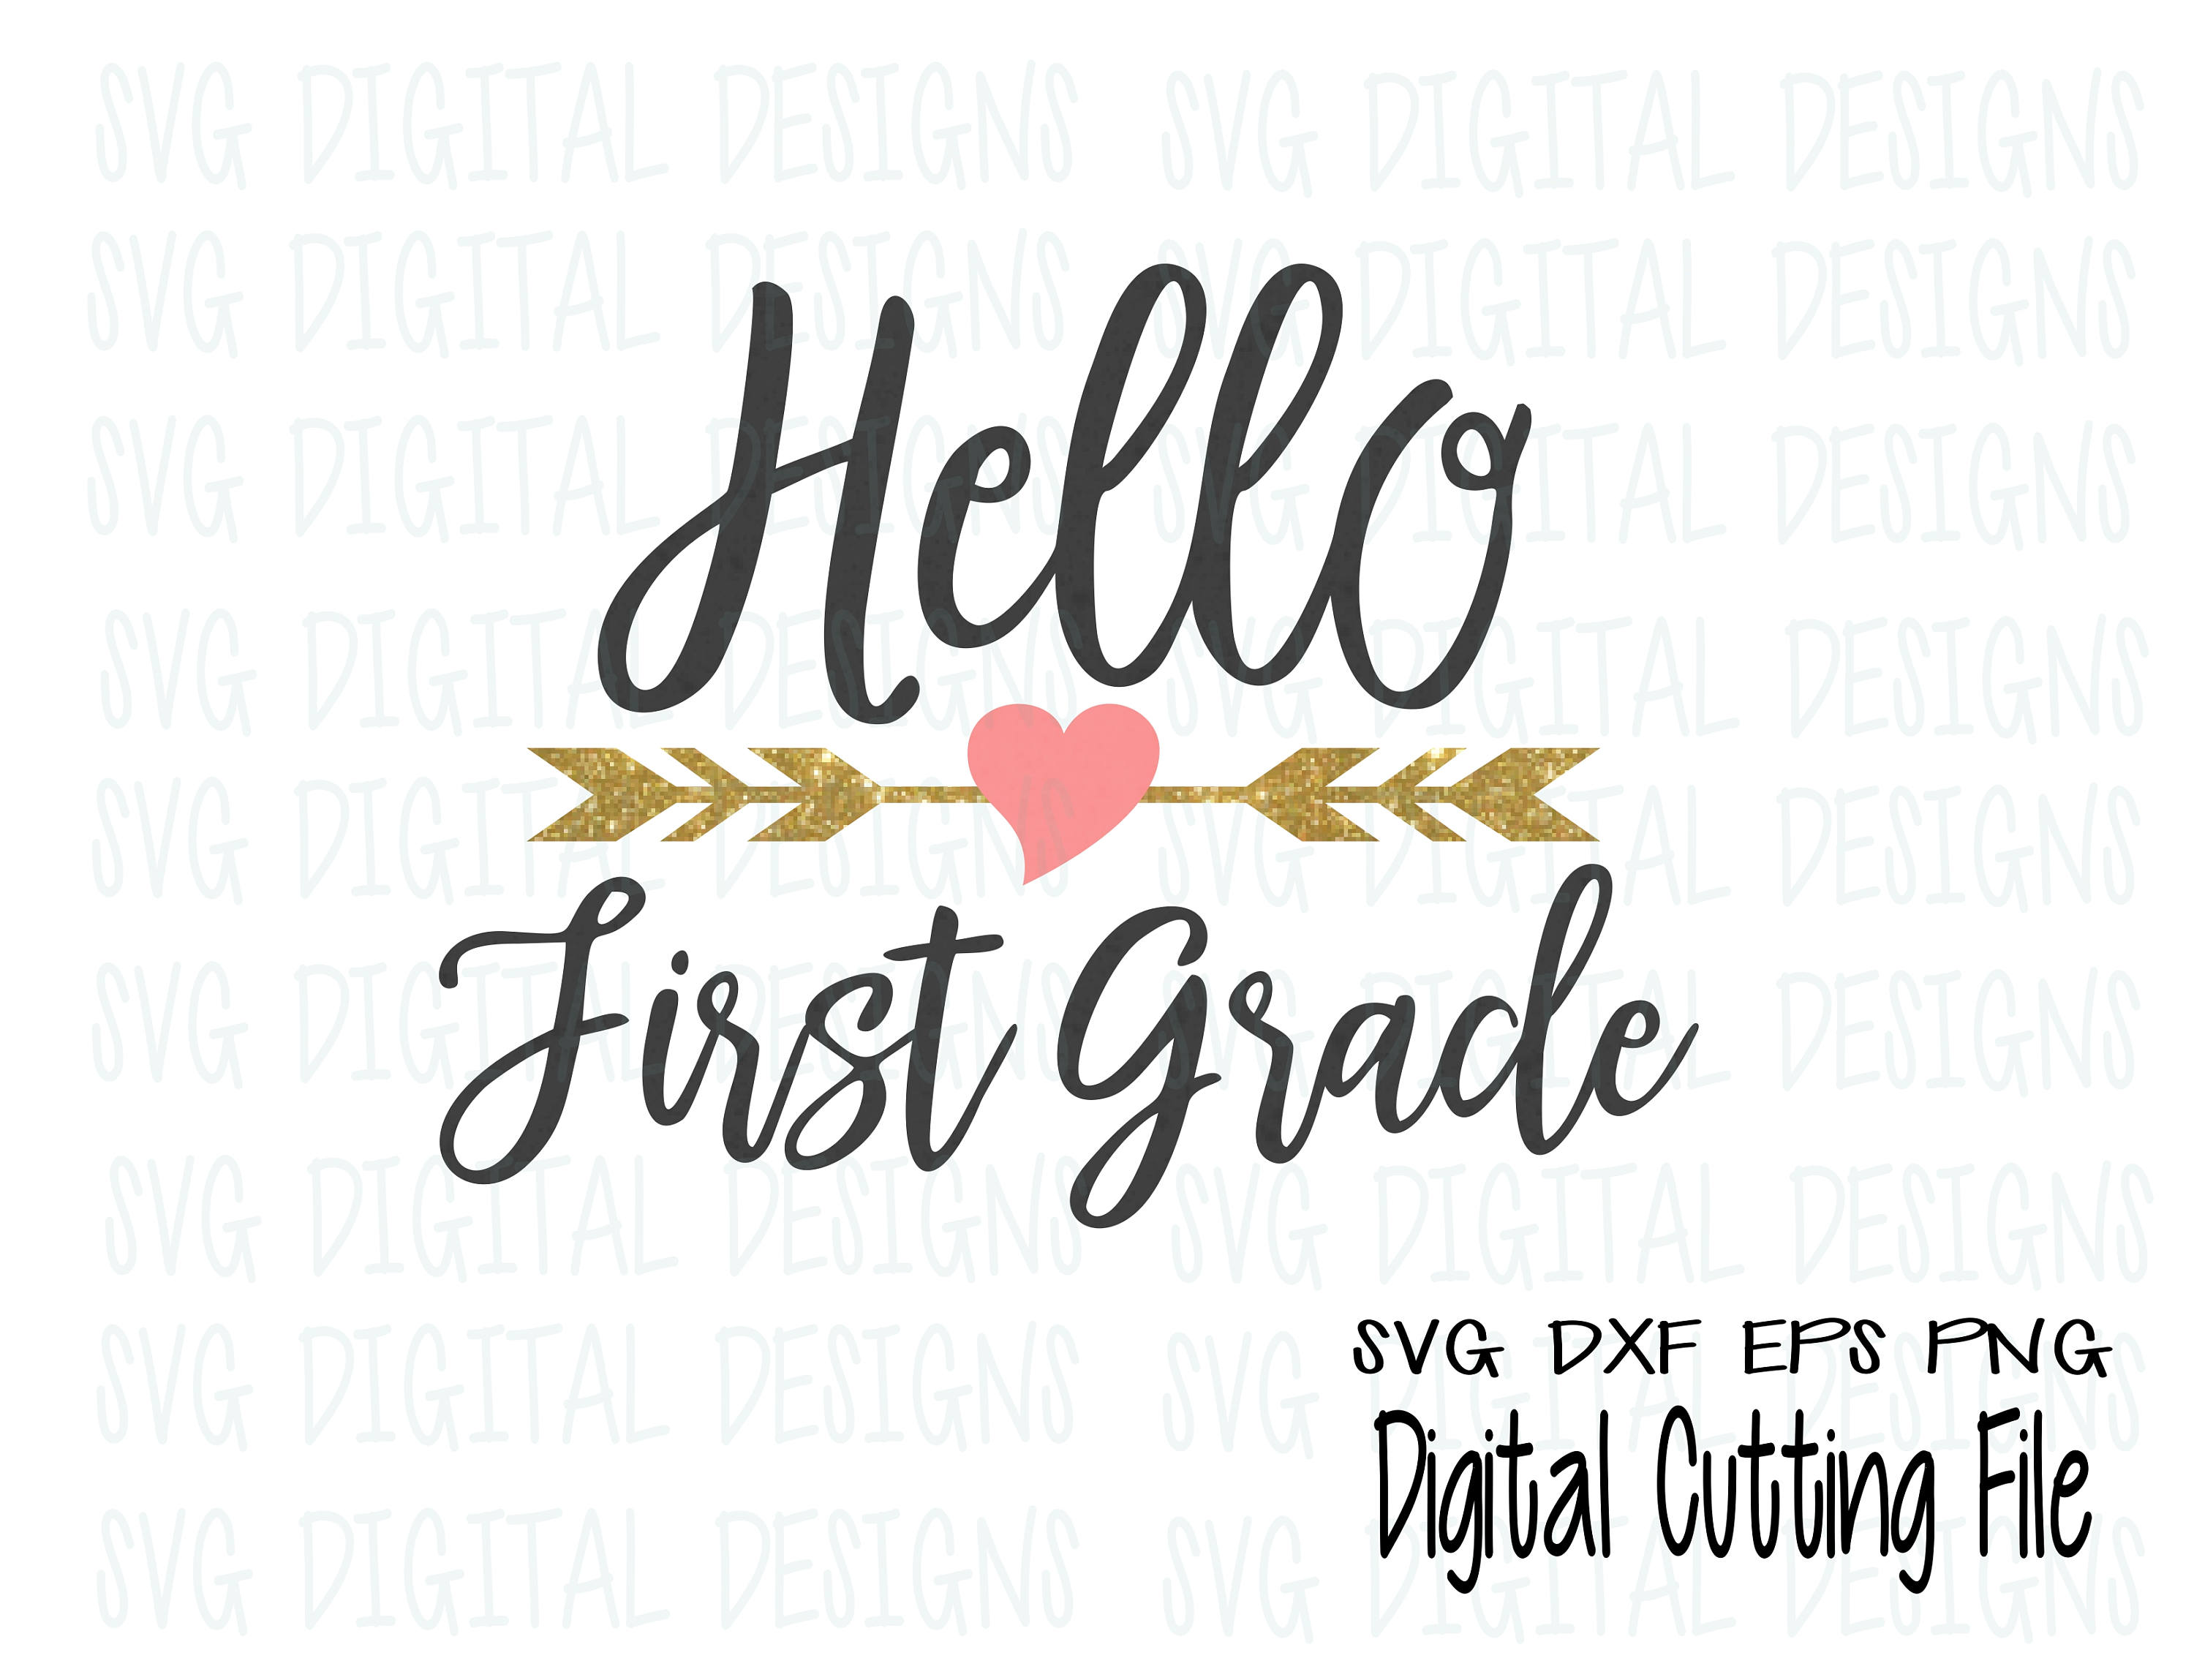 Hello First Grade Svg, 1st Grade Clipart Cut files, Svg Dxf Eps files for  Silhouette and Cricut Back to School Script Digital Design.